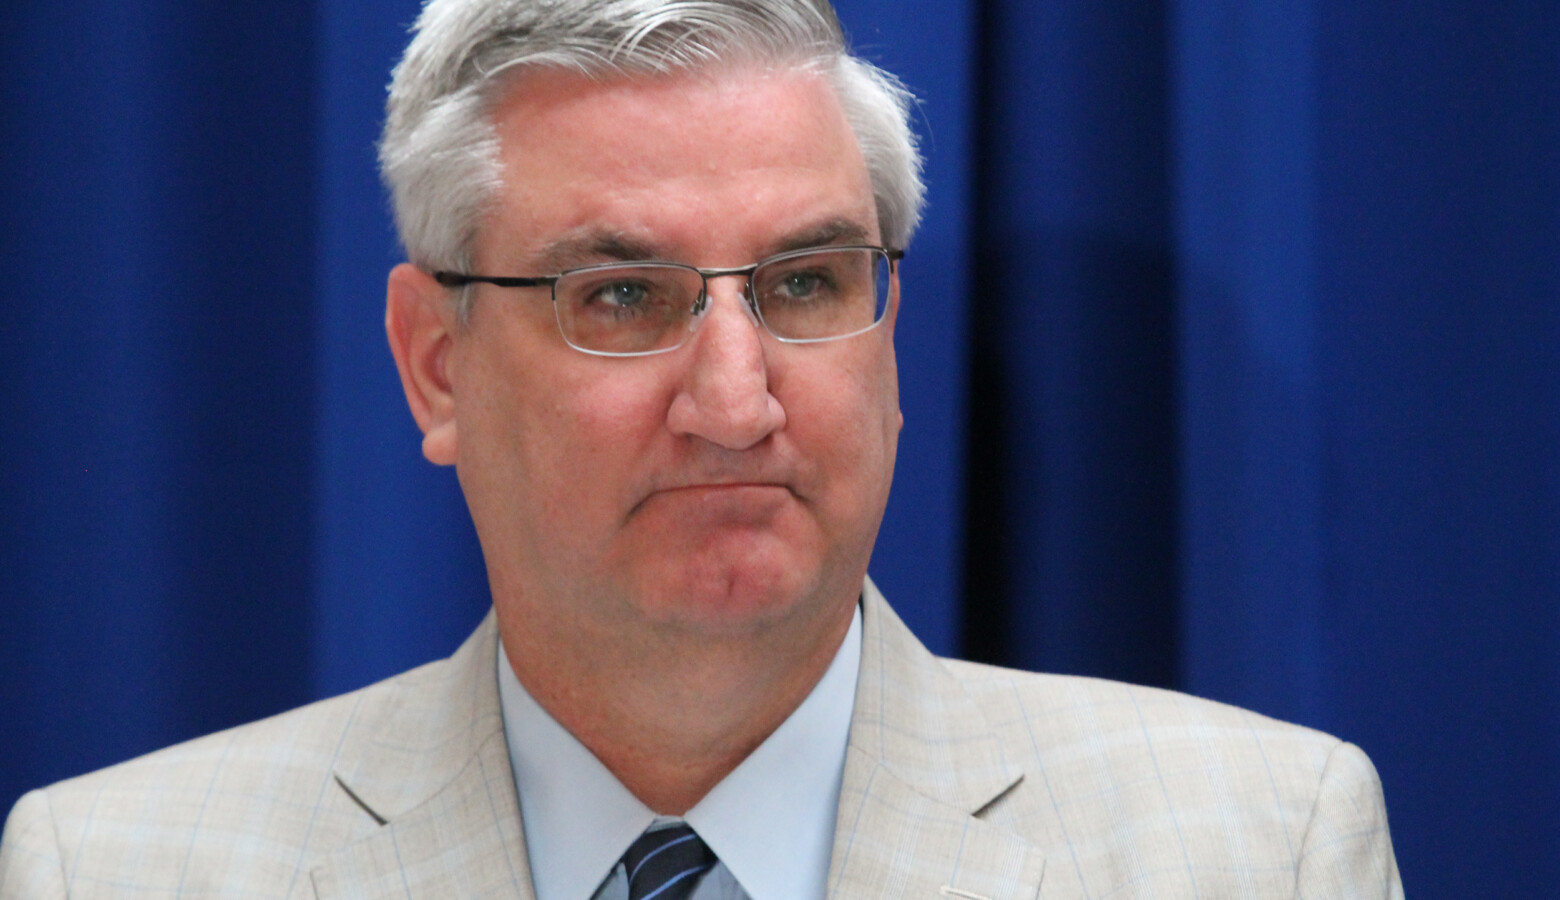 """Gov. Eric Holcomb signed into law an anti-abortion measure that requires doctors to tell patients about a procedure the American College of Obstetricians and Gynecologists calls """"unproven and unethical."""" (Lauren Chapman/IPB News)"""